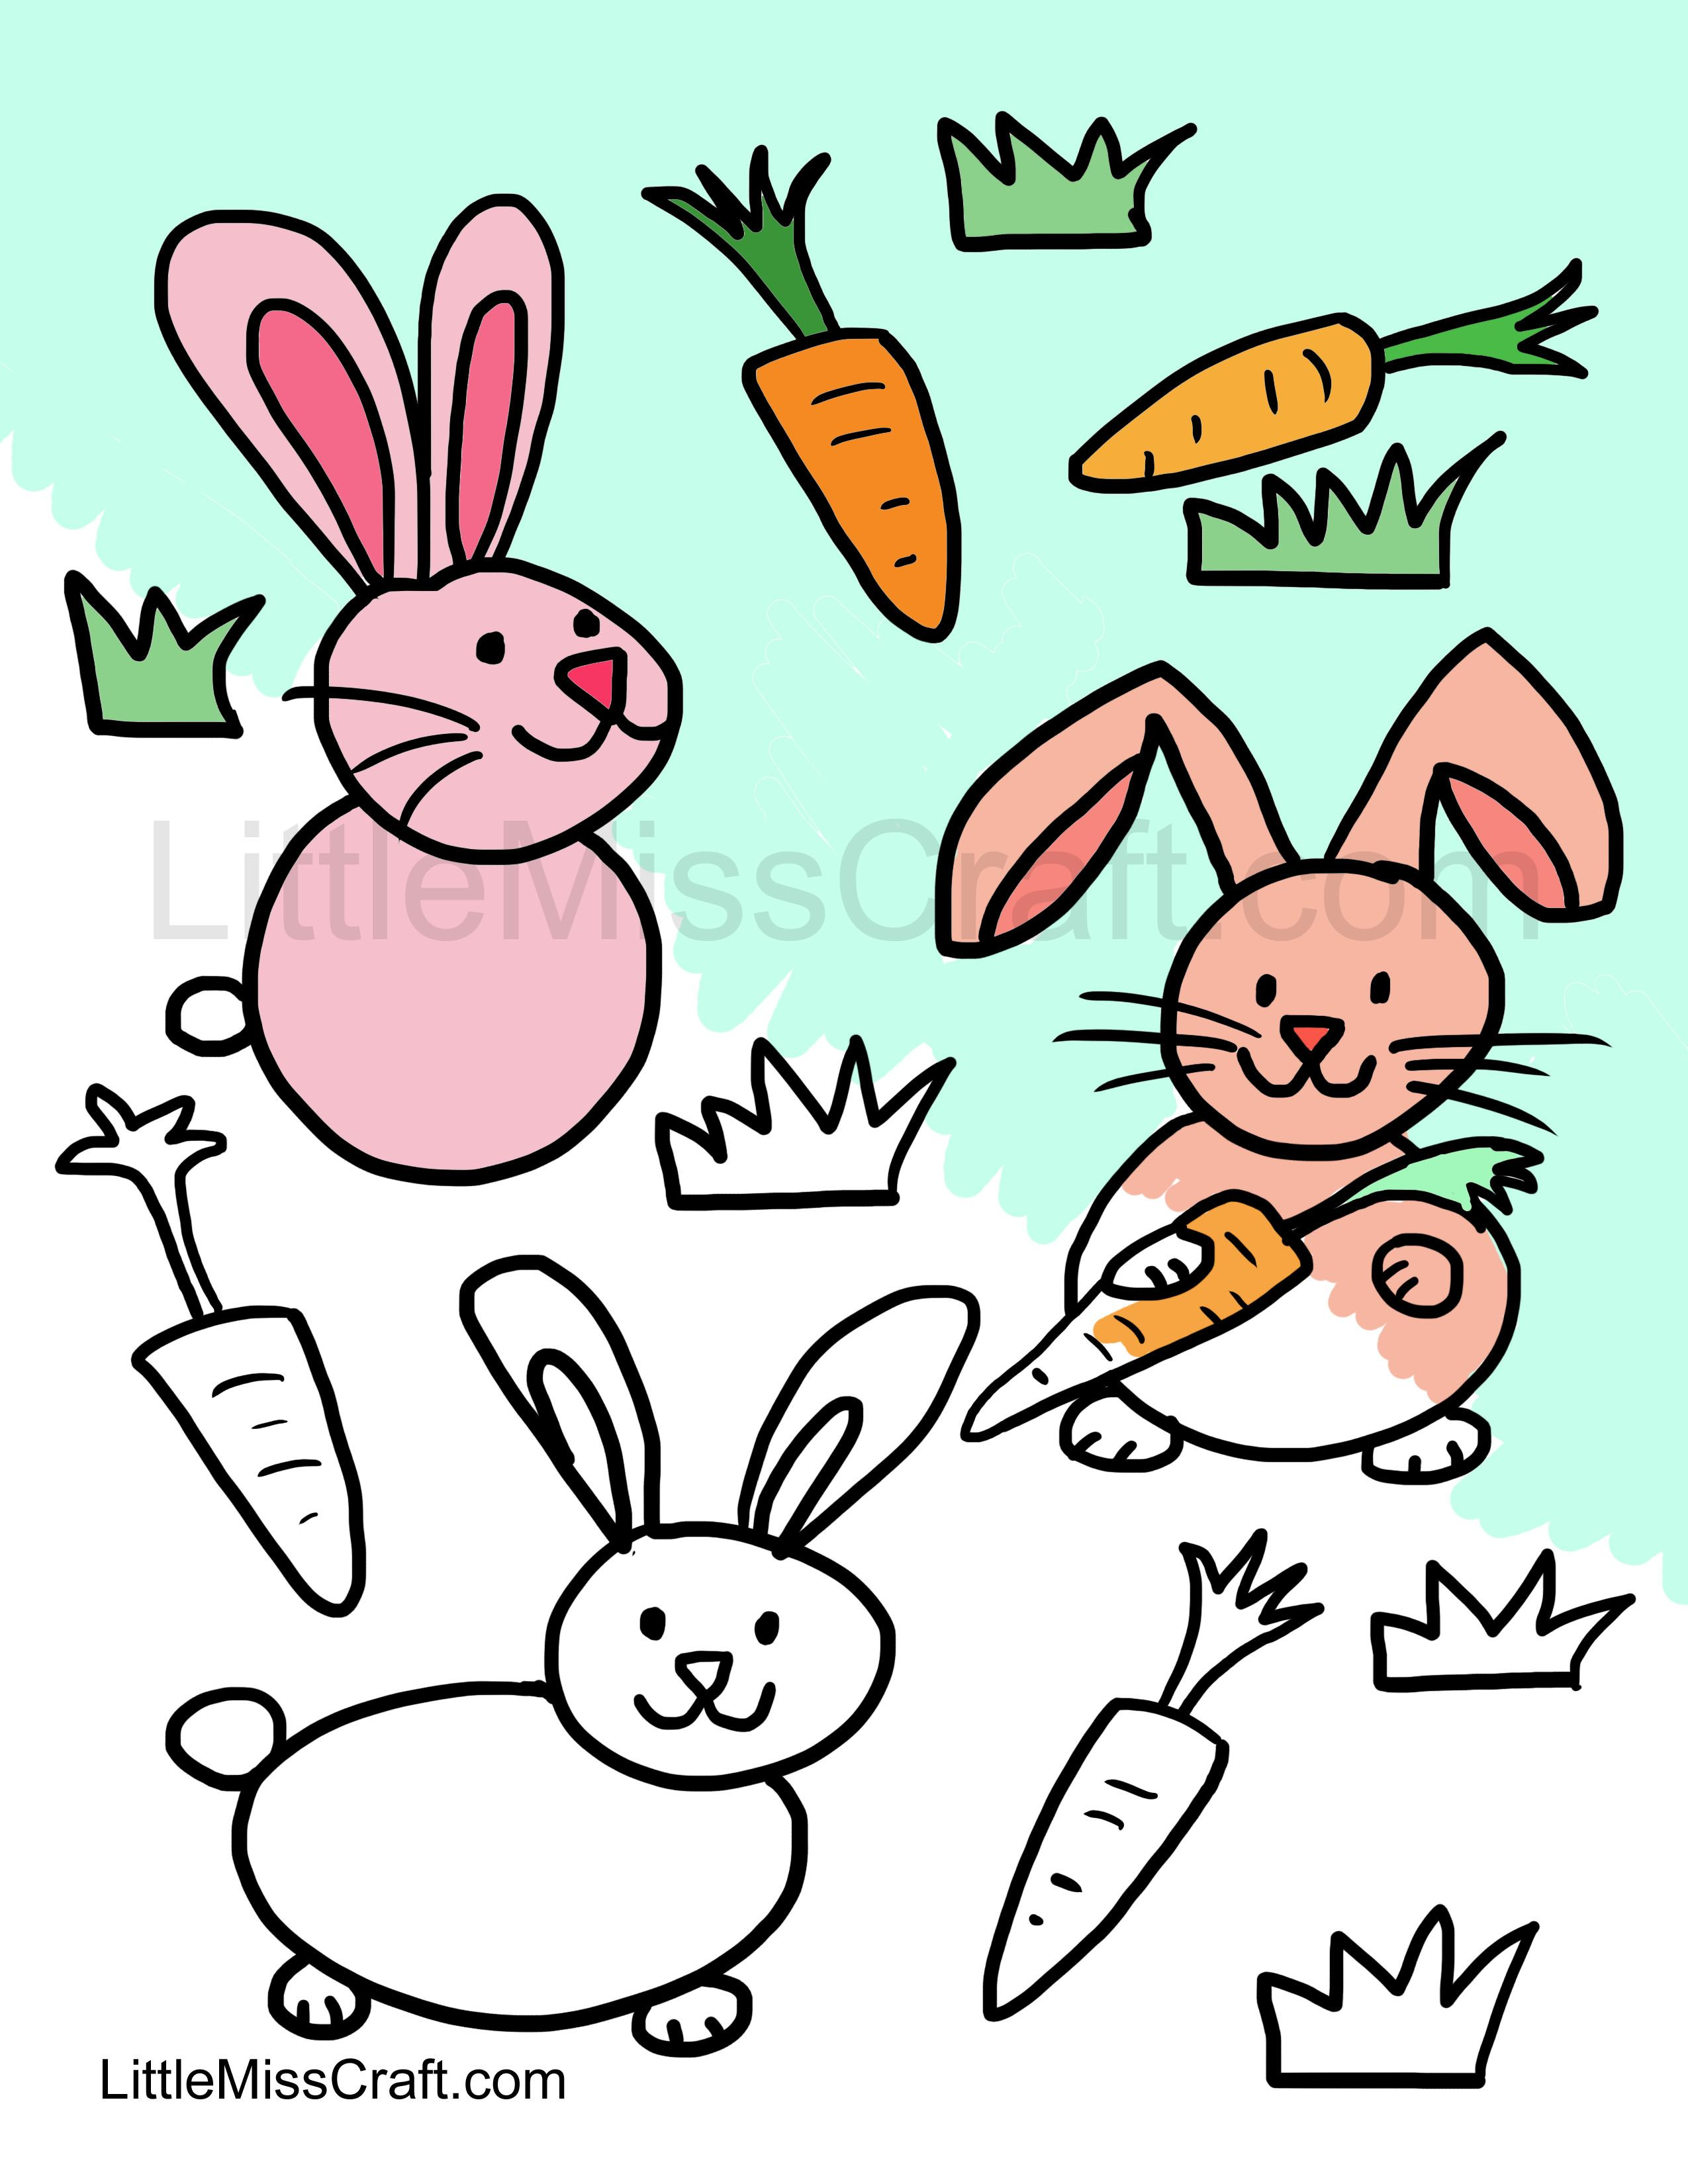 2550x3300 Cute Bunnies Coloring Page For Easter! Ready To Print